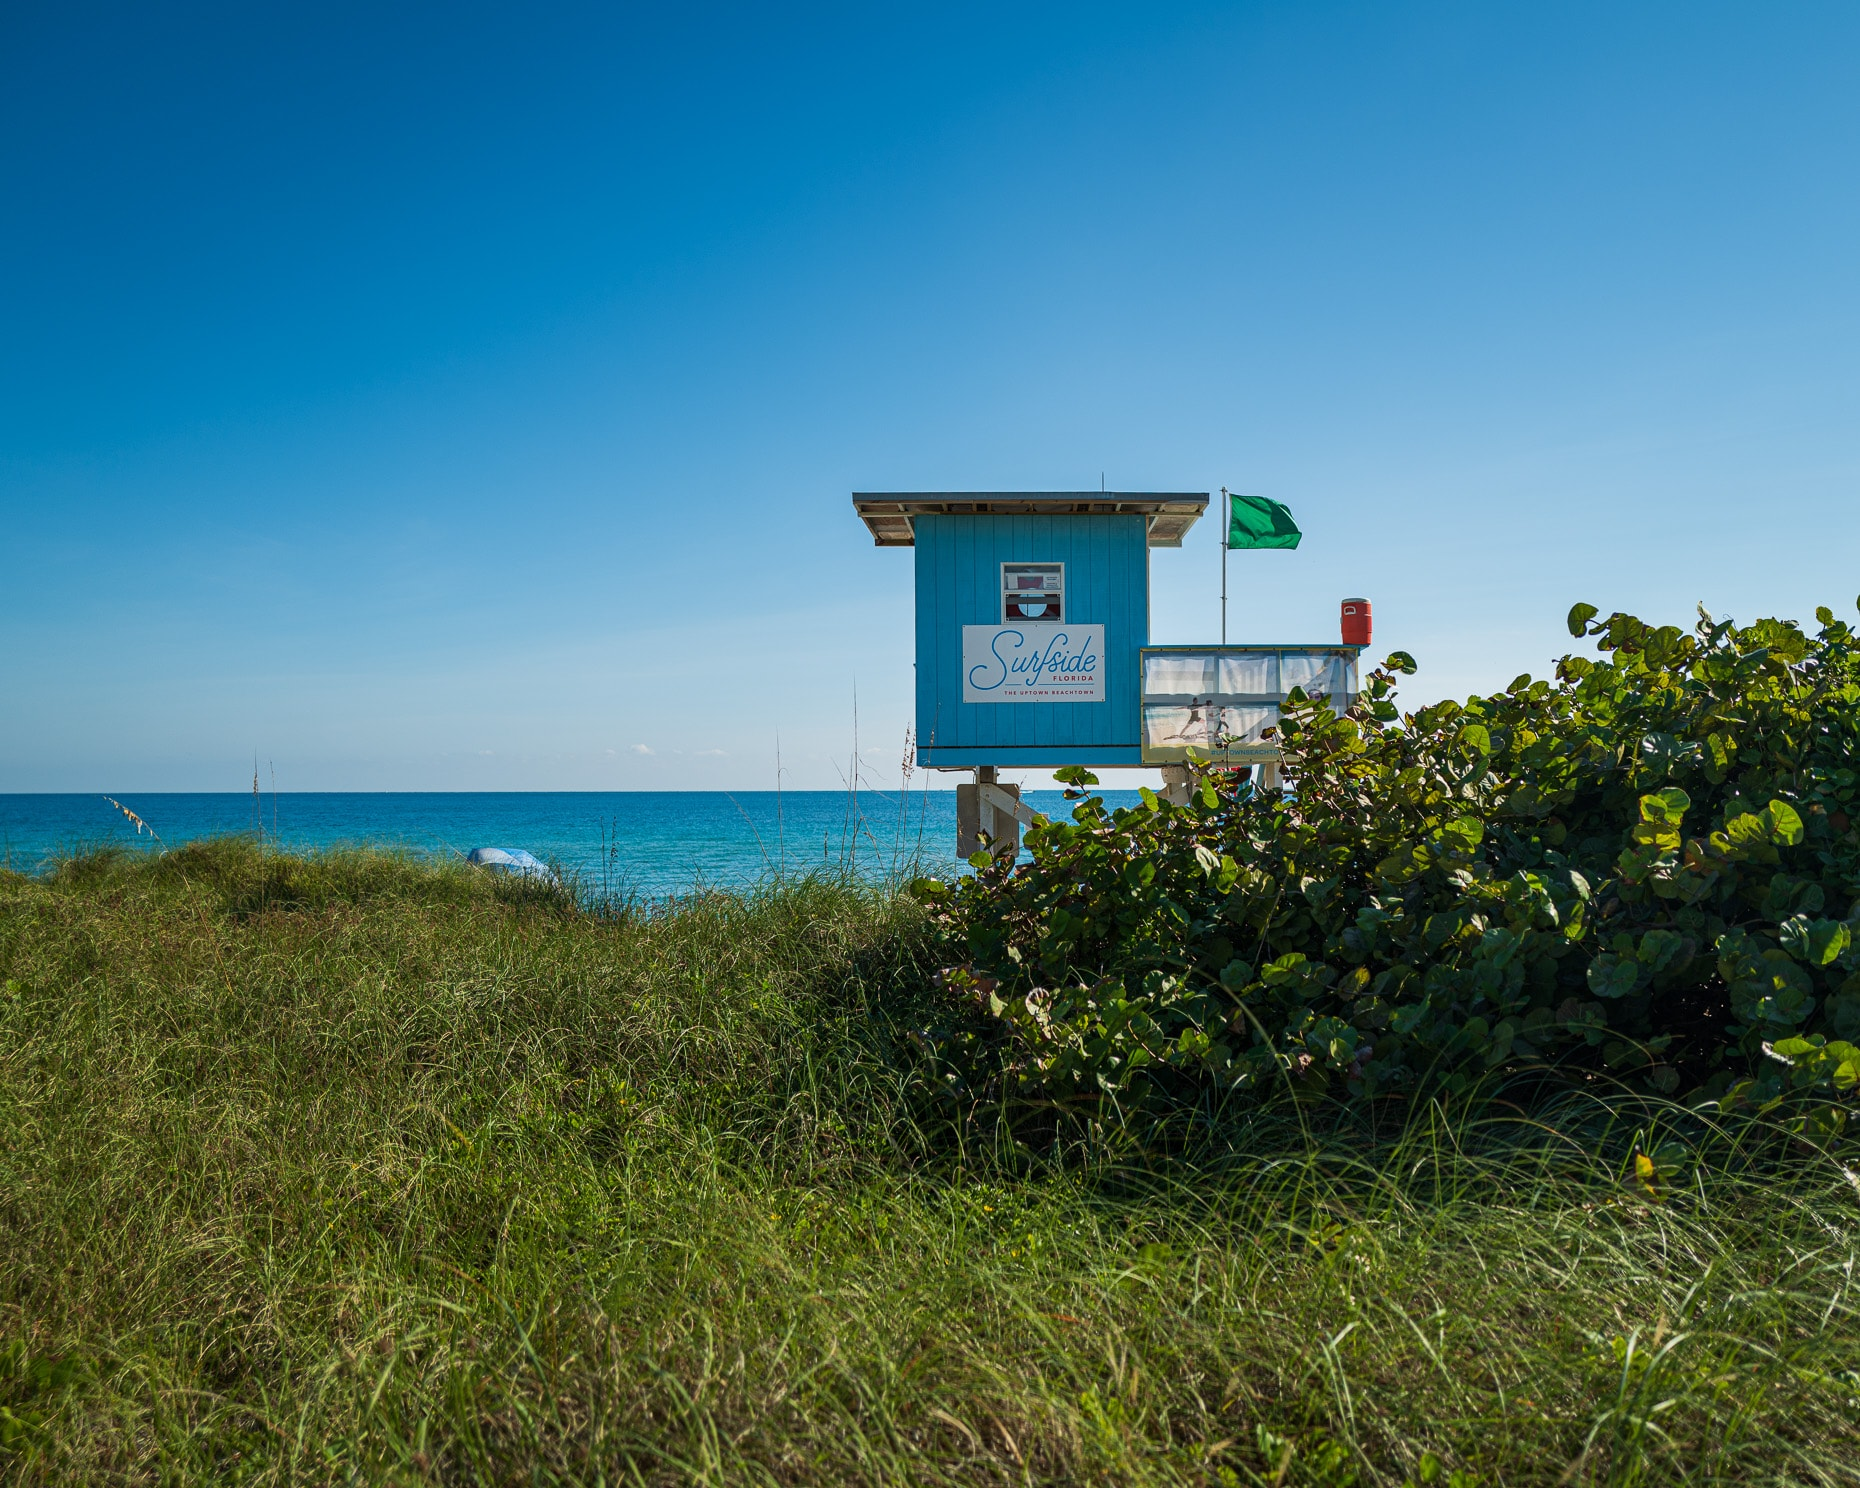 Surfside Lifeguard station